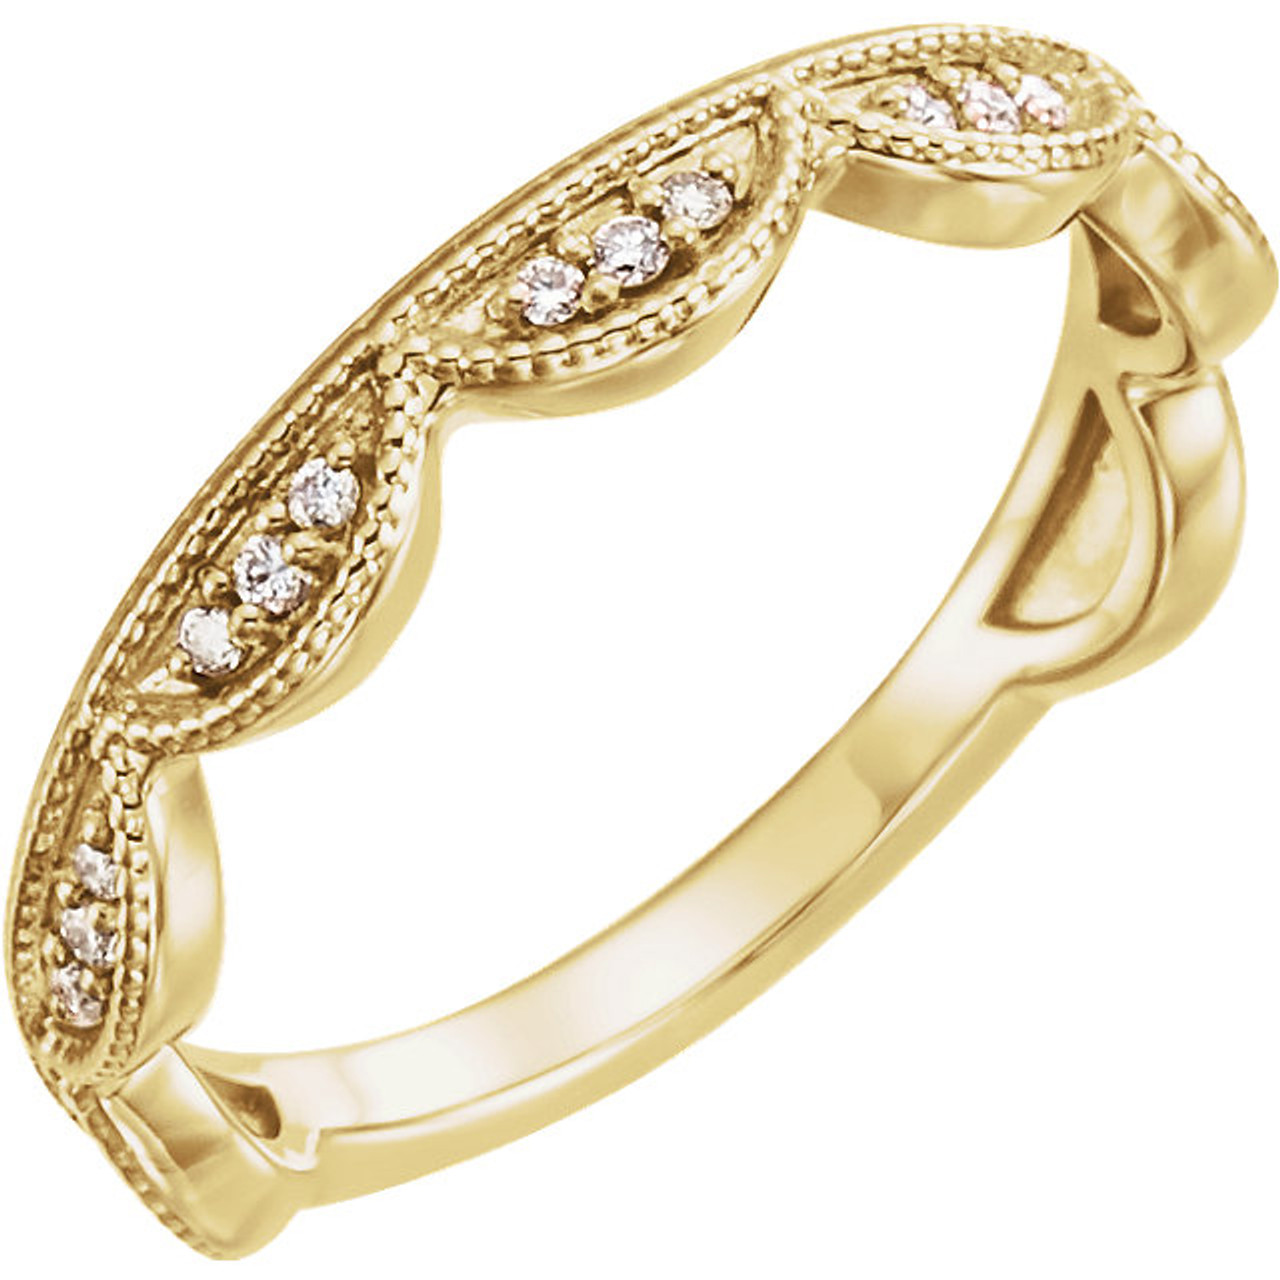 0a93cb61d5 14kt Gold Scalloped Diamond Stackable Ring - Wedding Bands & Co.